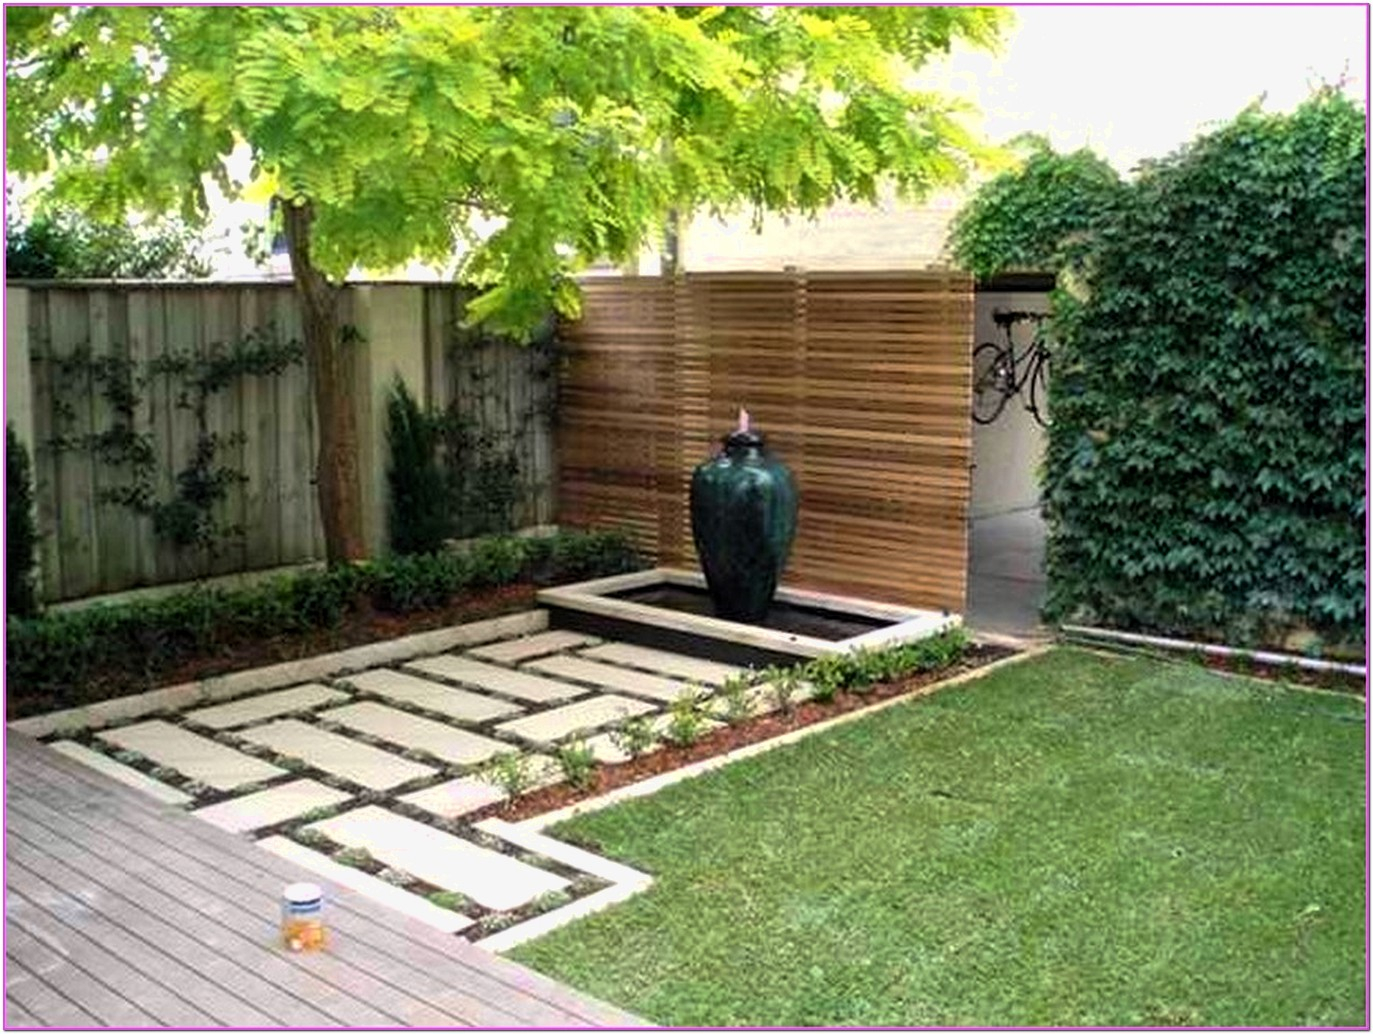 Garden Ideas Cheap Landscaping For Best Small Yard Landscaping Ideas pertaining to 14 Smart Initiatives of How to Makeover Inexpensive Landscaping Ideas For Backyard